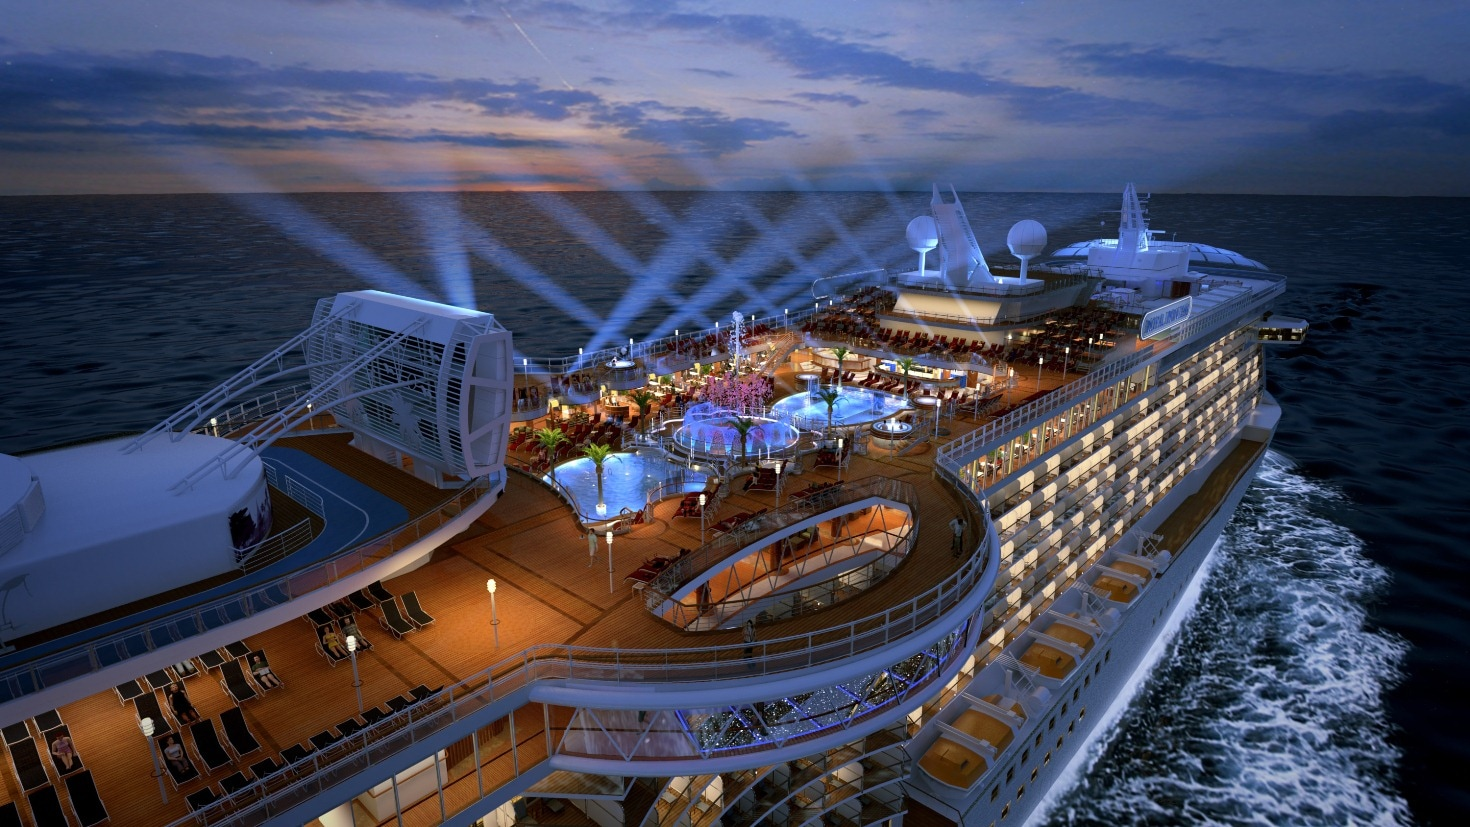 http://www.princess.com/news/images/2012/09/RoyalPrincess_TopDeckAtNight.jpg